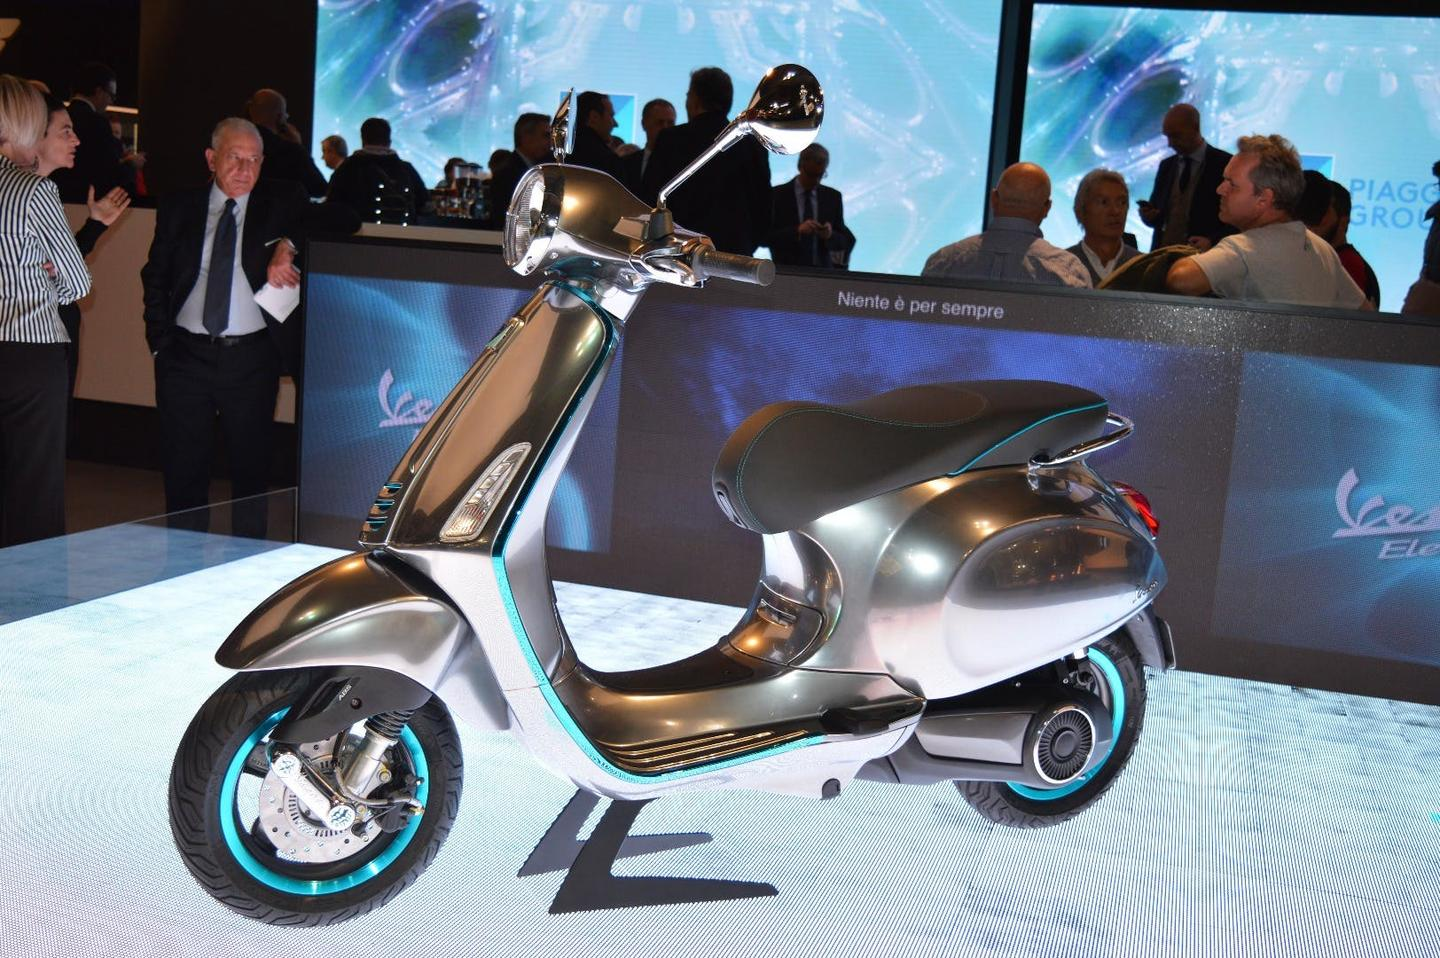 We first spied the Vespa Elettrica concept in Milan in 2016